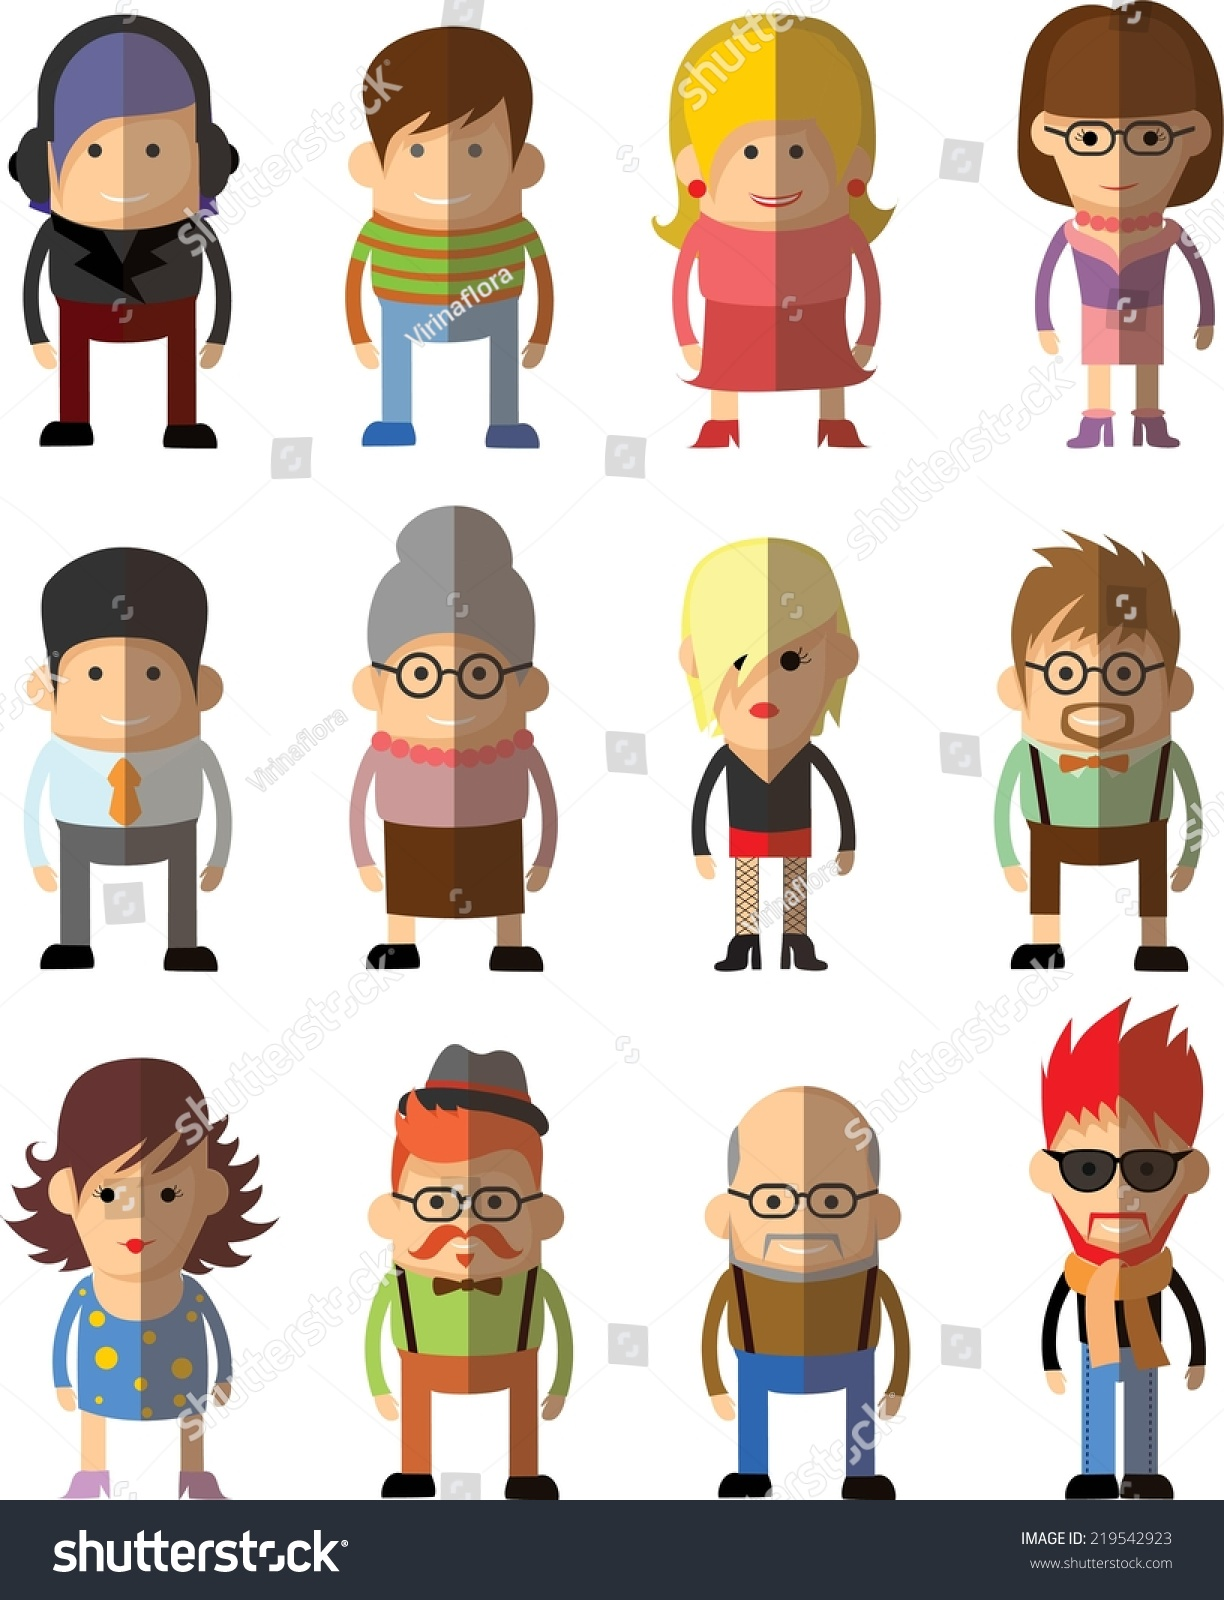 Flat Design Character Download : Set vector cute character avatar icons stock